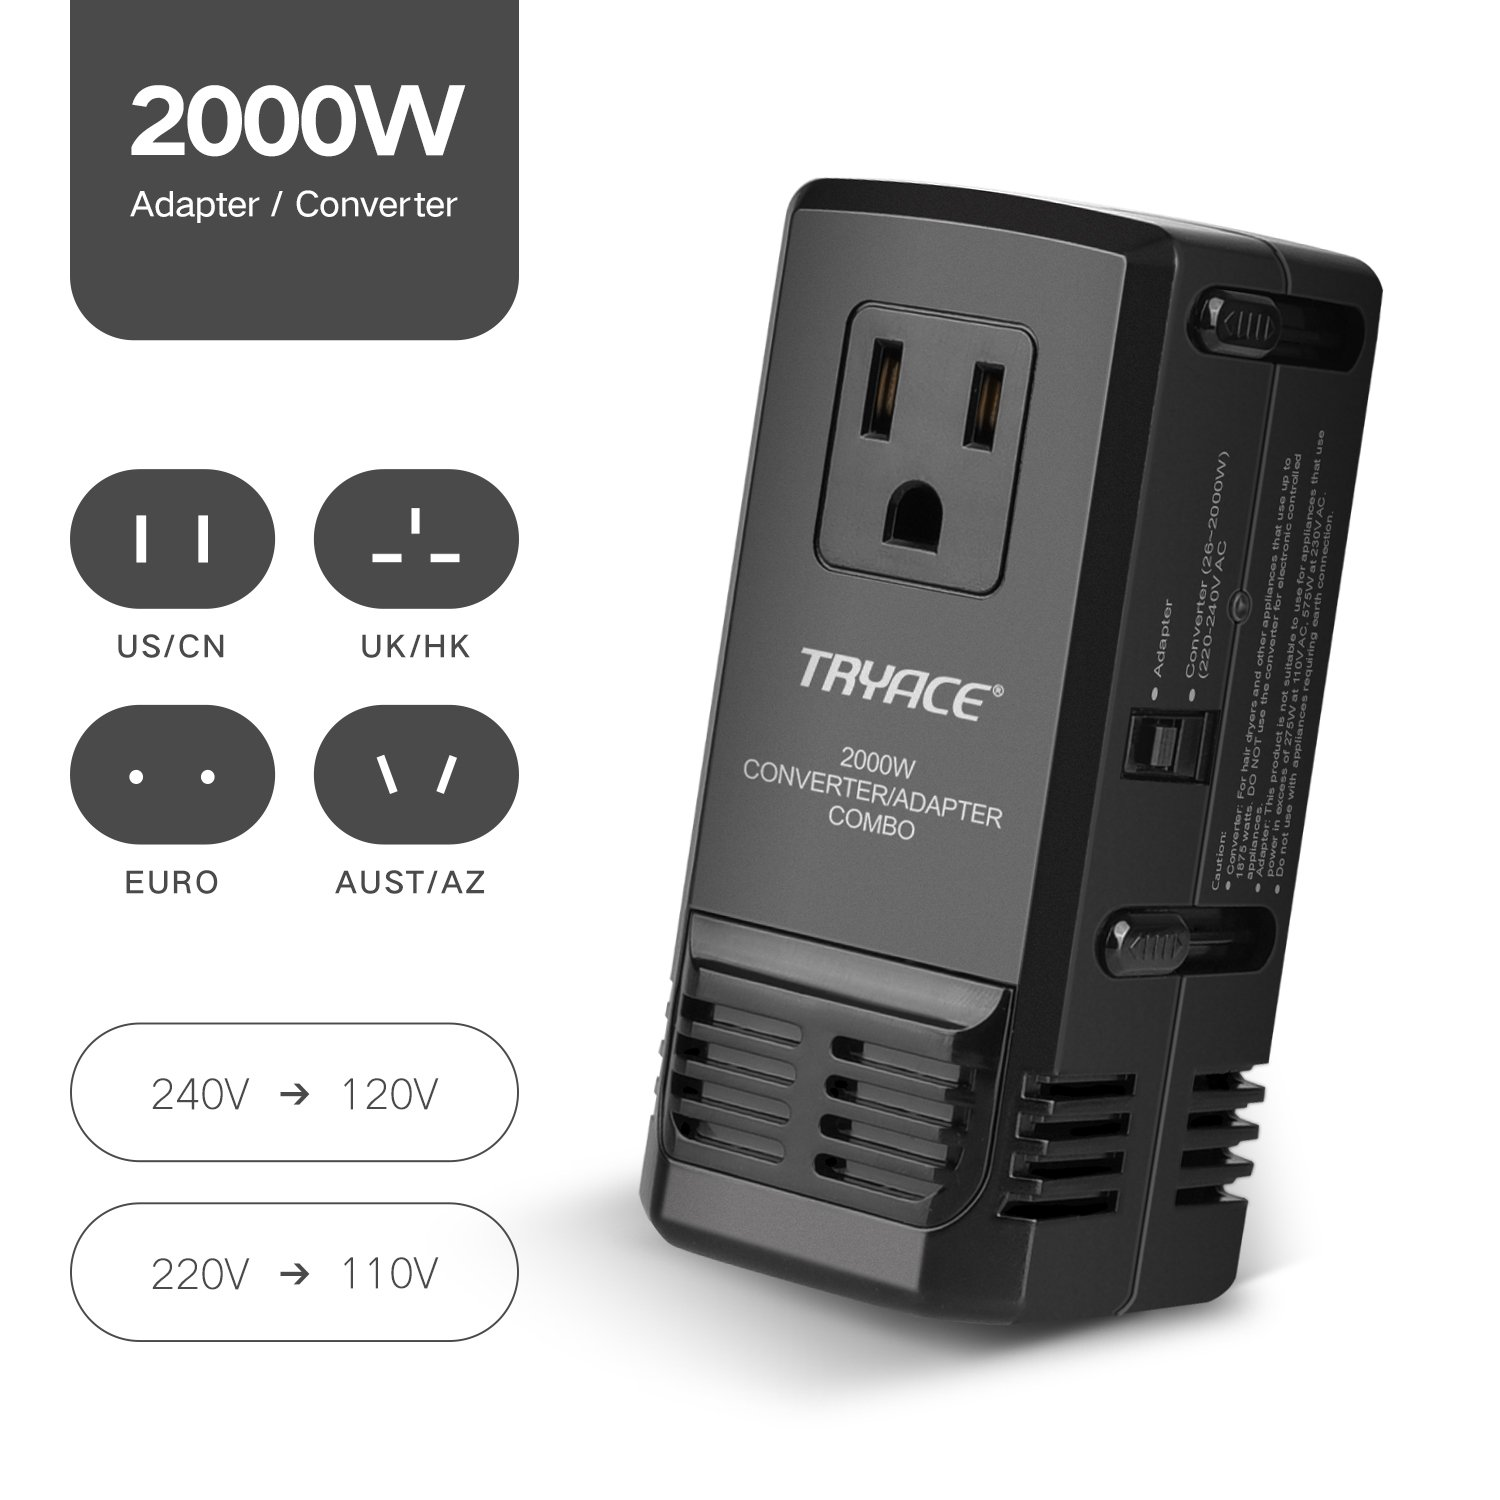 TryAce 2000W Worldwide Travel Converter and Adapter Set Down Voltage 240V to 110V Combo International Voltage Converter for Hair Dryer Phones Laptop All in One Plug Adapter Wall Charge for UK/AU/US/EU